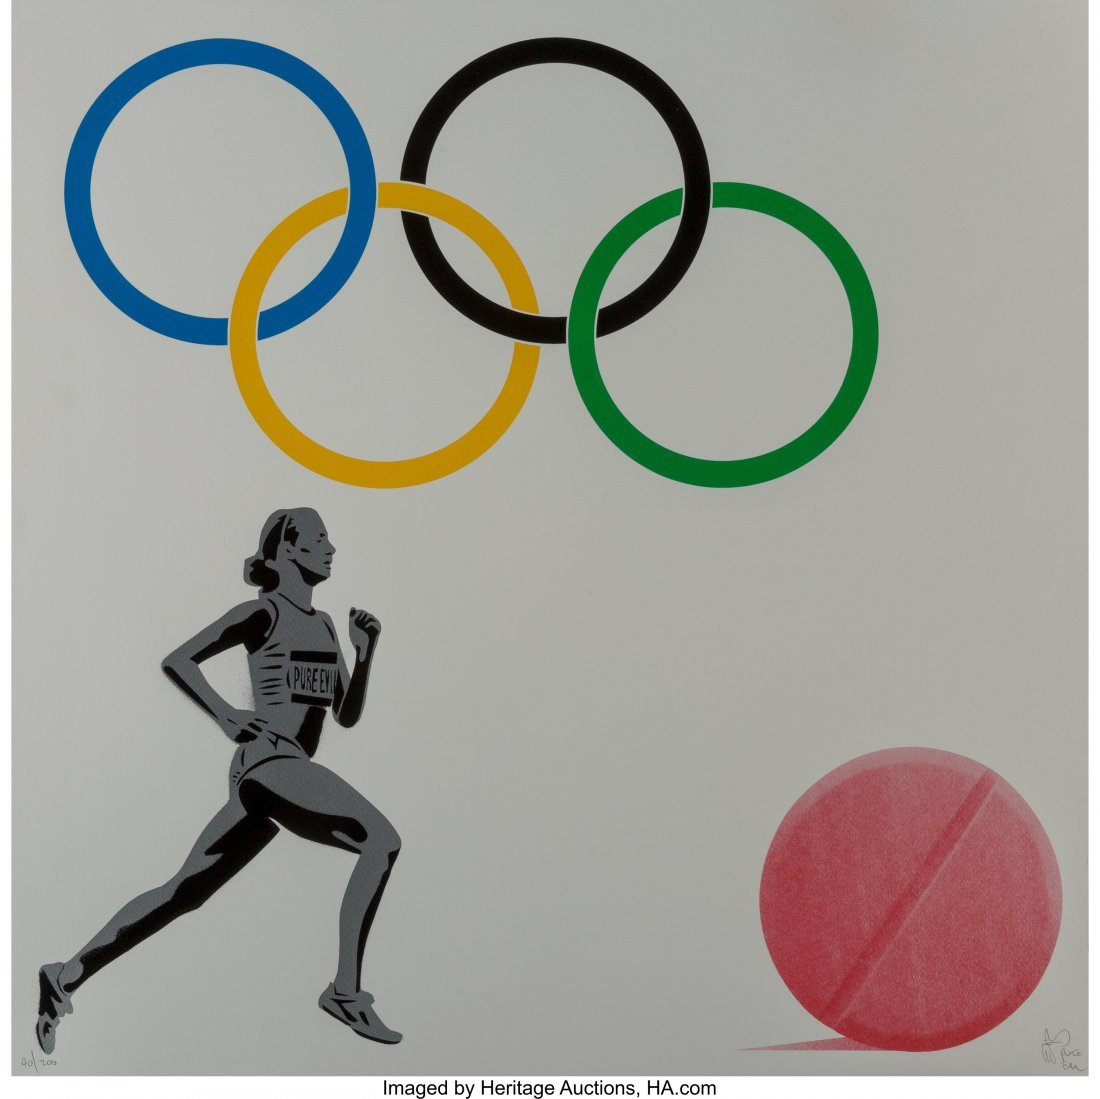 60167: Pure Evil (b. 1968) The New Logo for the Olympic